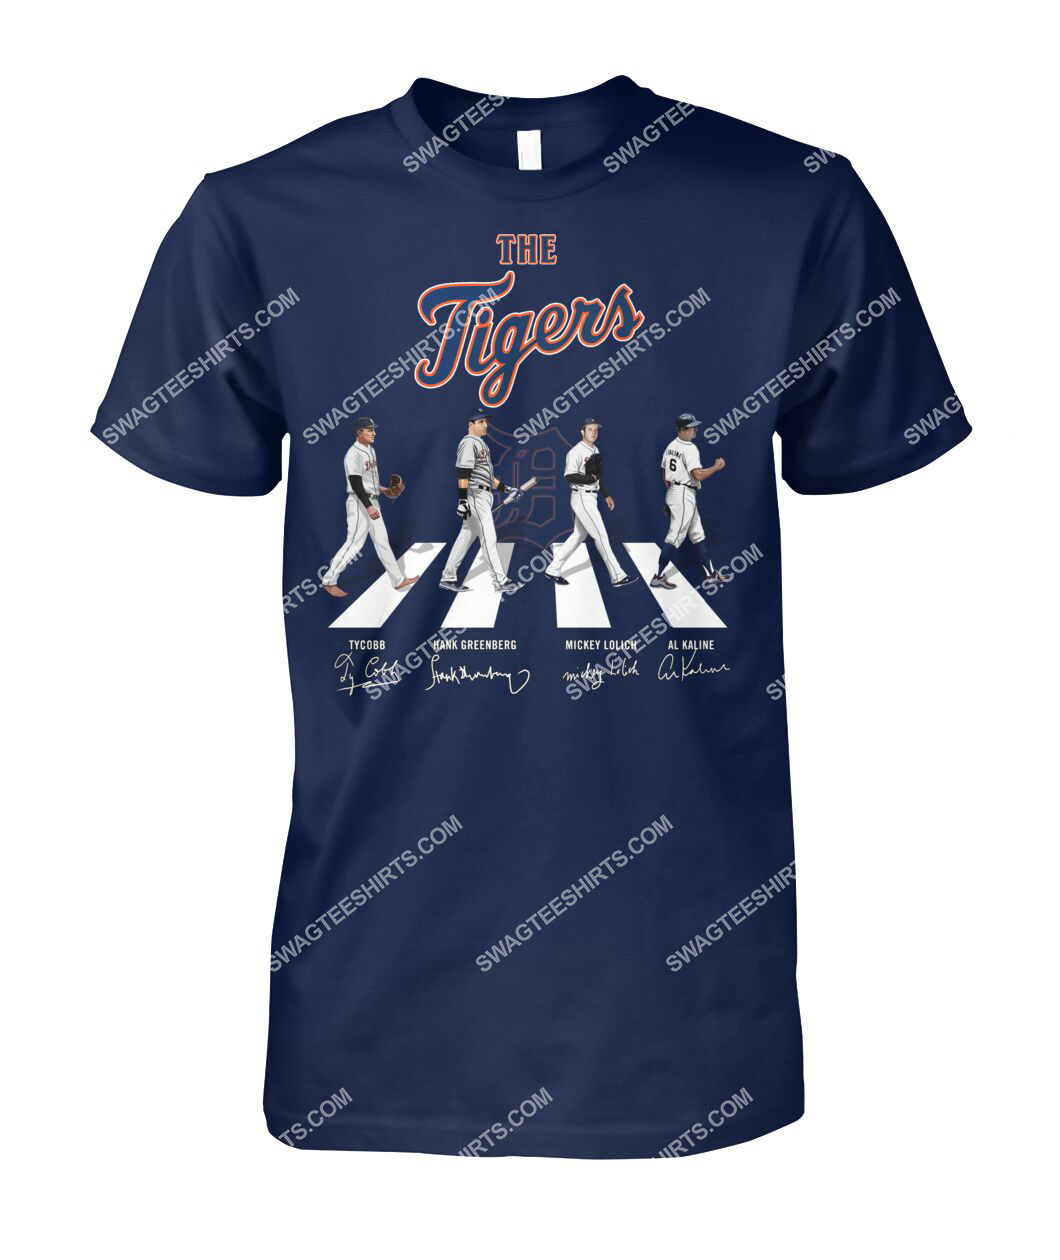 abbey road the detroit tigers signatures tshirt 1